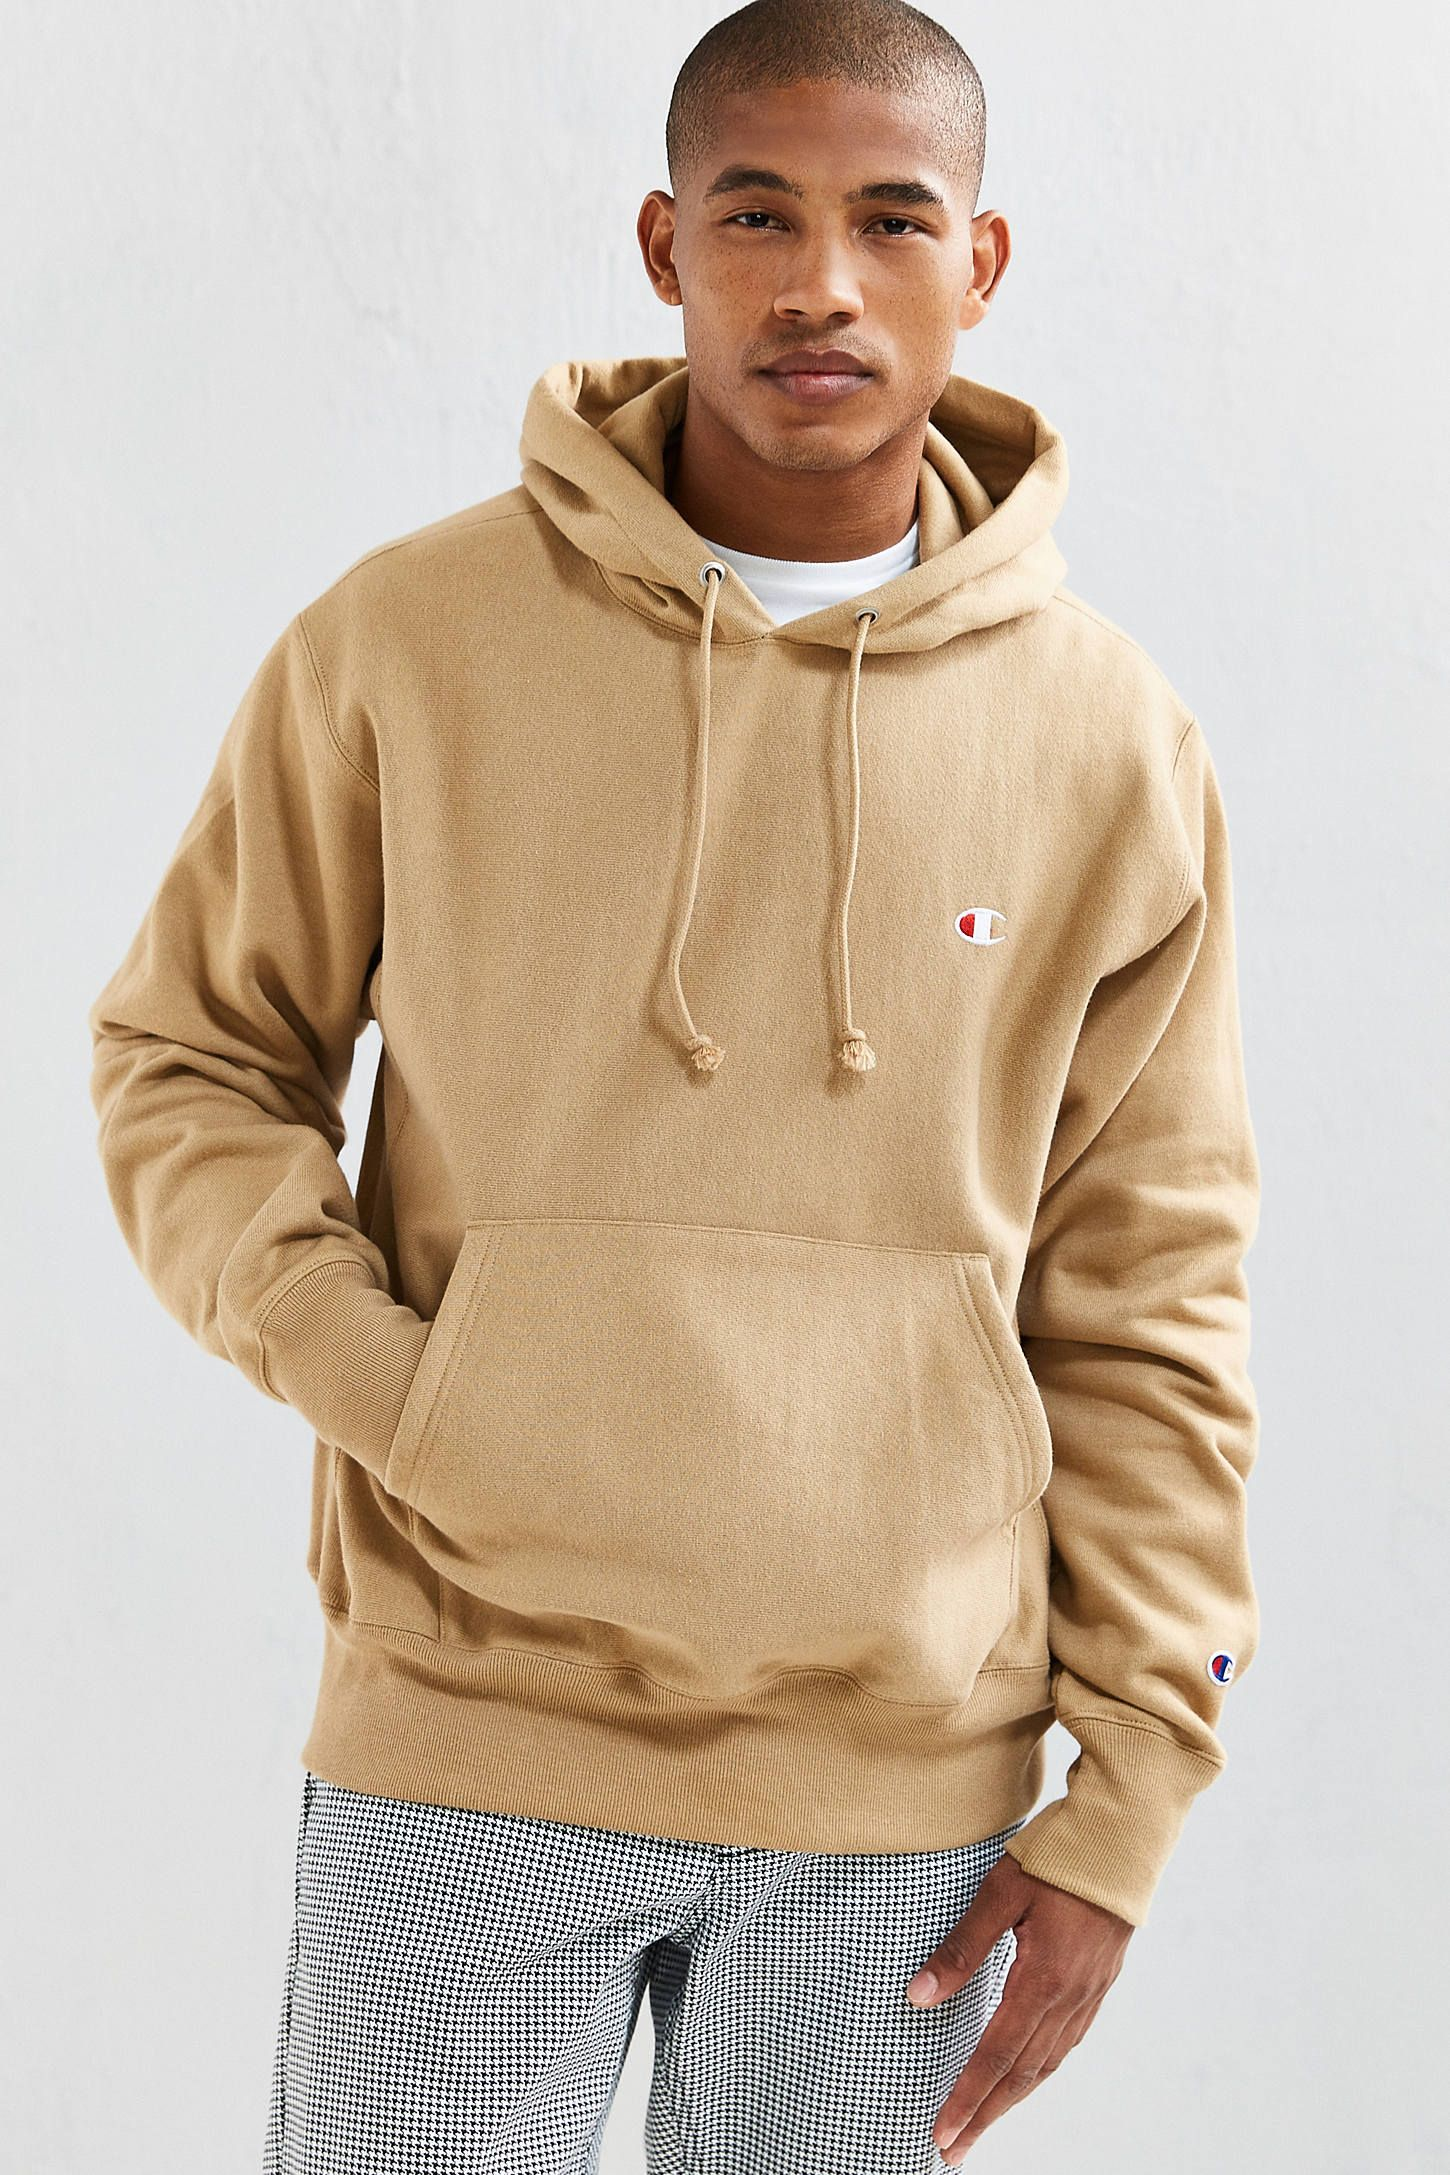 a39ced23158a Champion Reverse Weave Hoodie Sweatshirt | Urban Outfitters Champion  Clothing, Cool Hoodies, Men's Hoodies